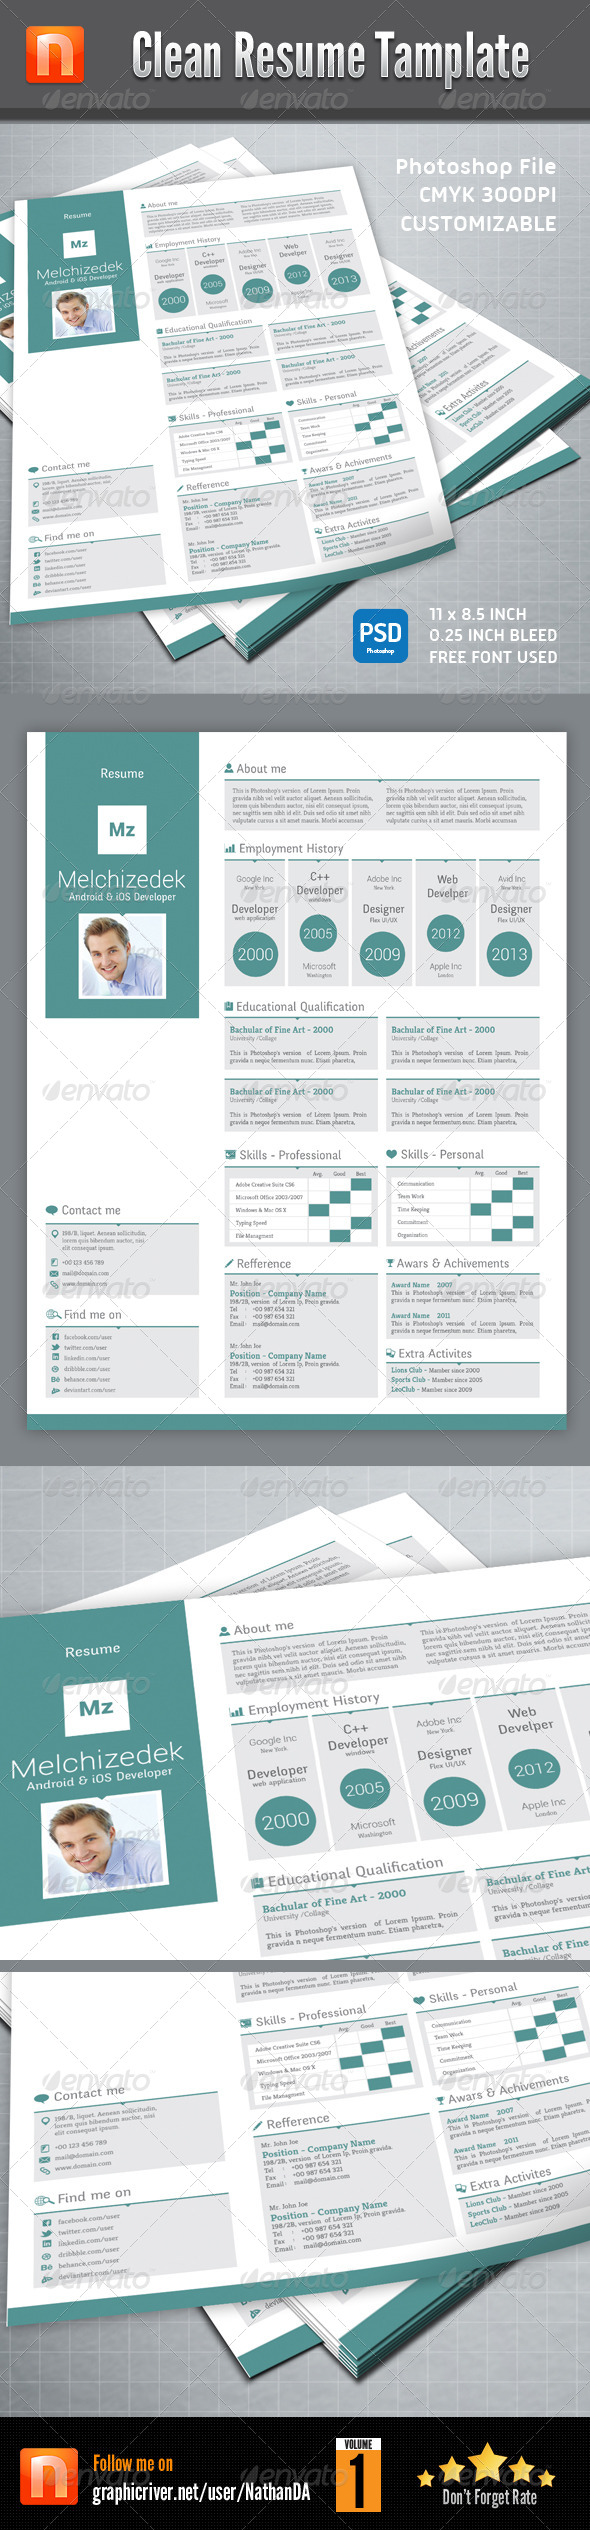 GraphicRiver Clean Resume Tamplate V1 5507067